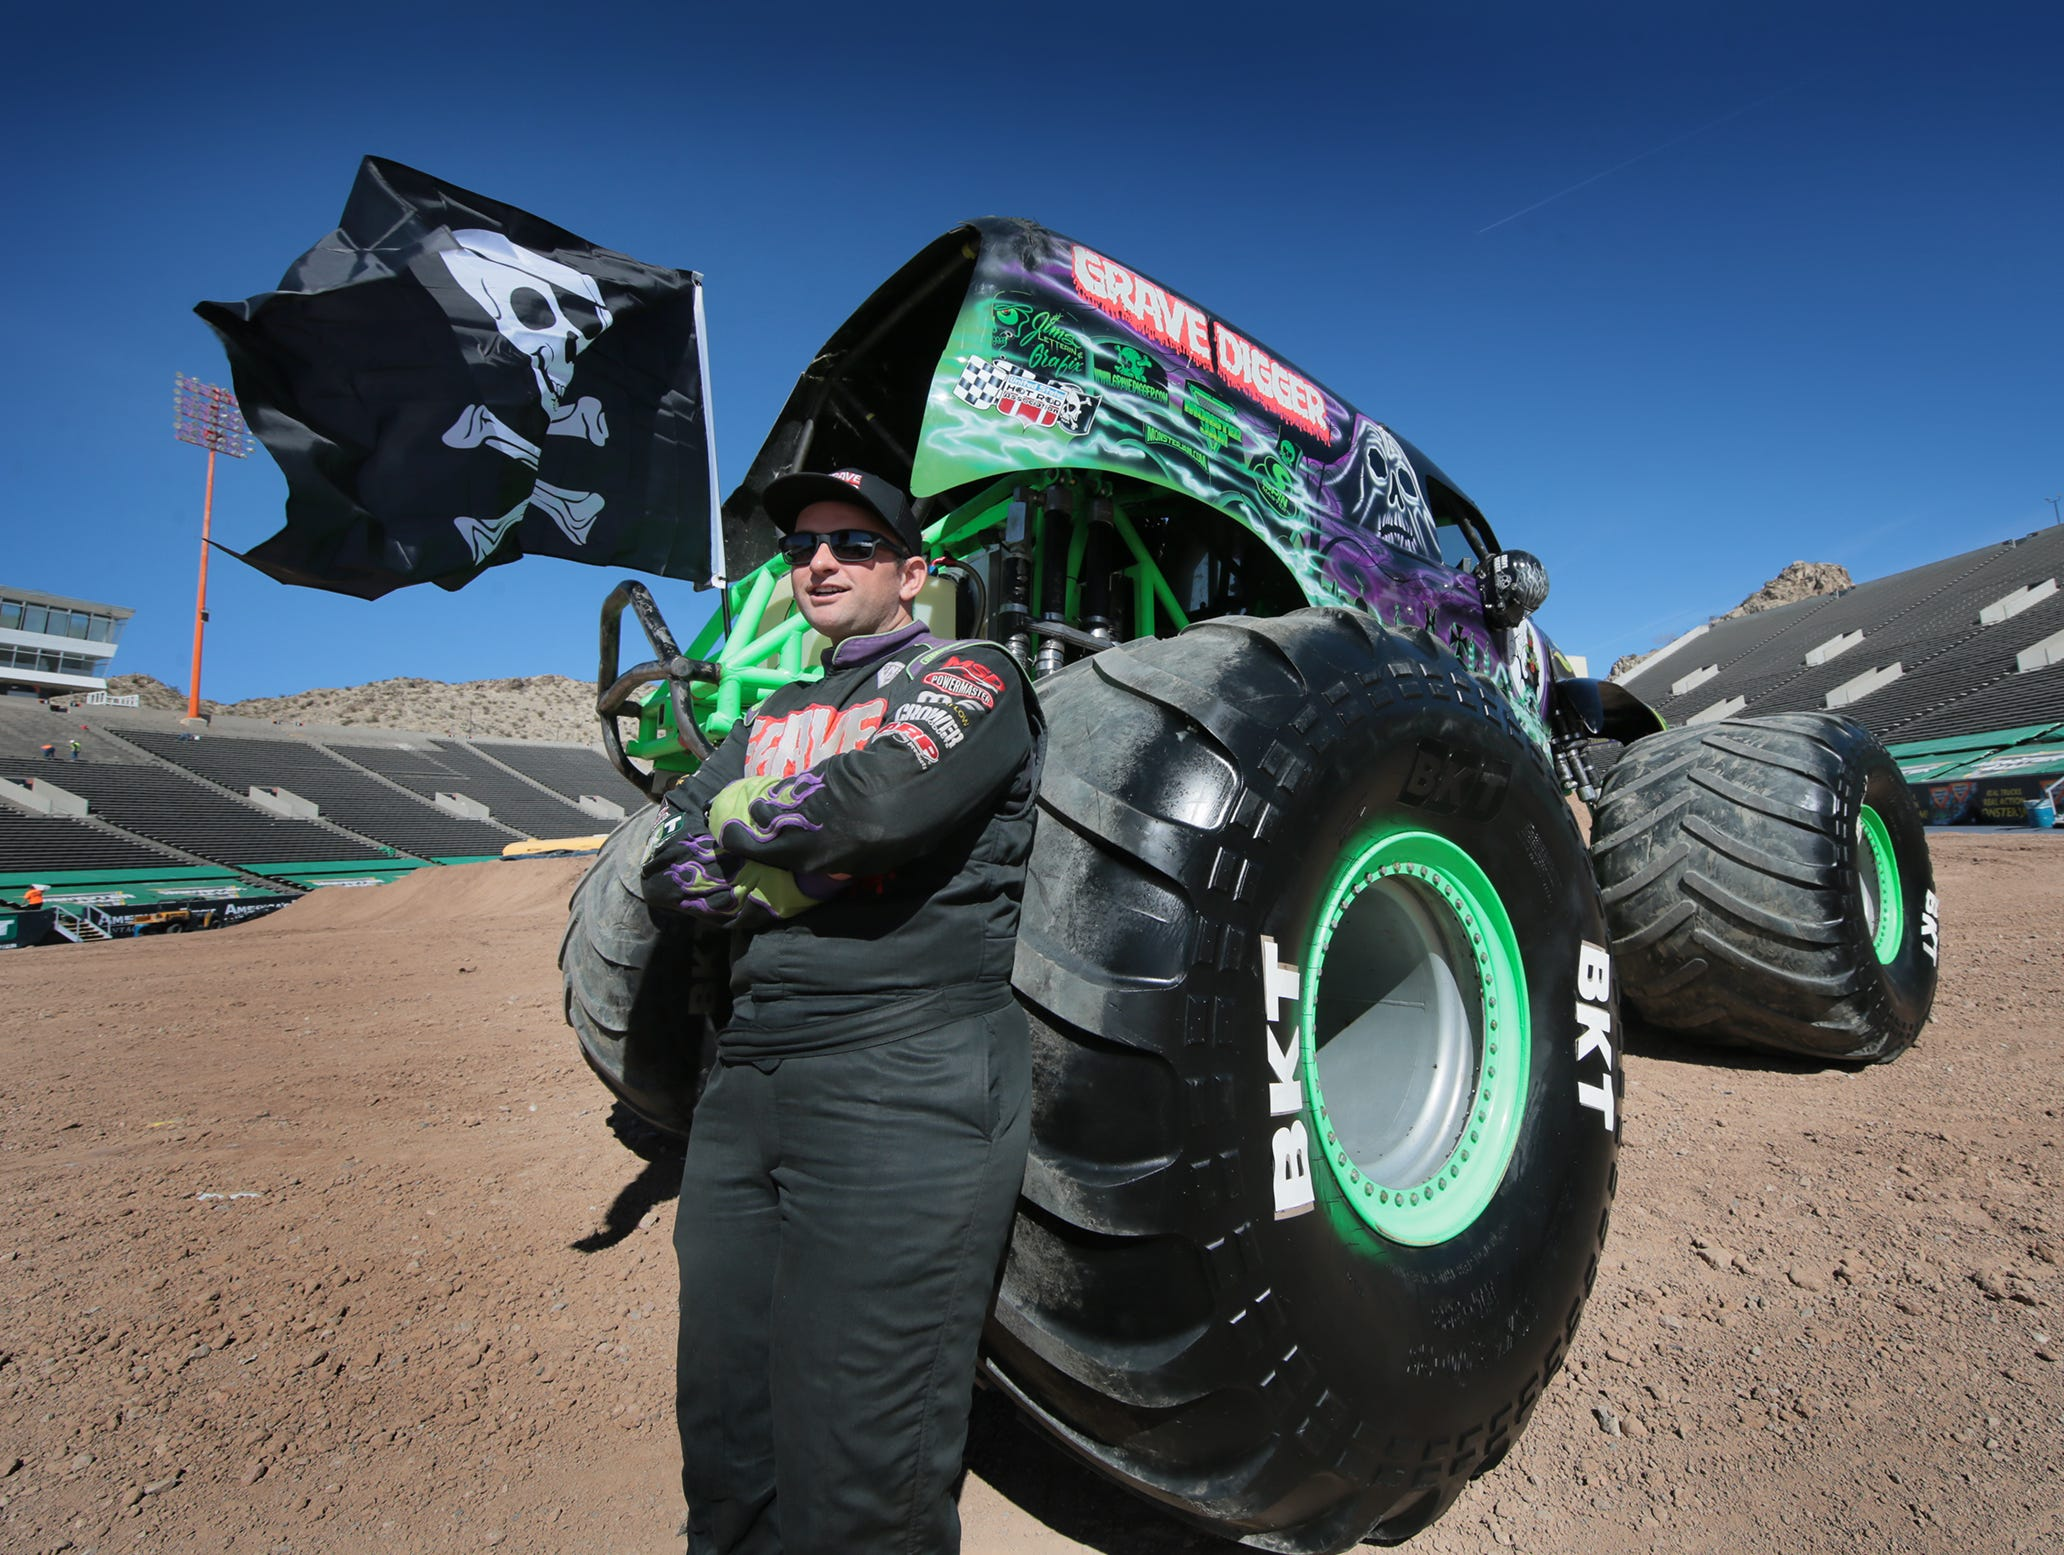 Adam Anderson will pilot his Grave Digger monster truck this weekend during Monster Jam at the Sun Bowl.